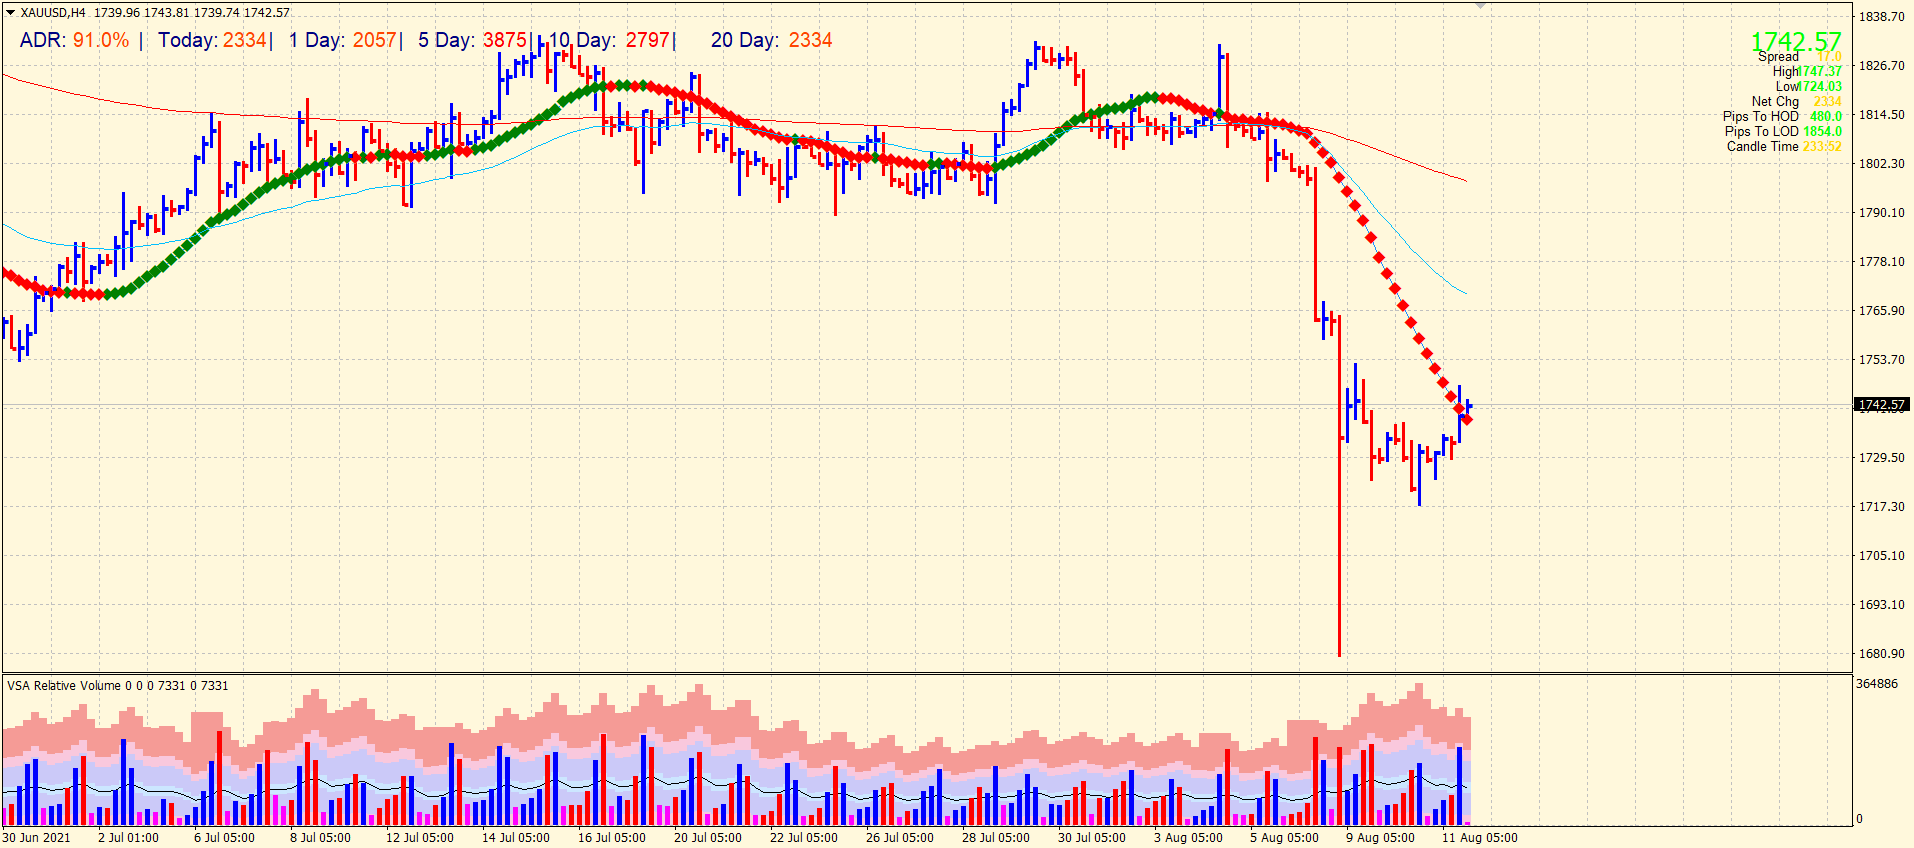 Gold 4-hour price chart